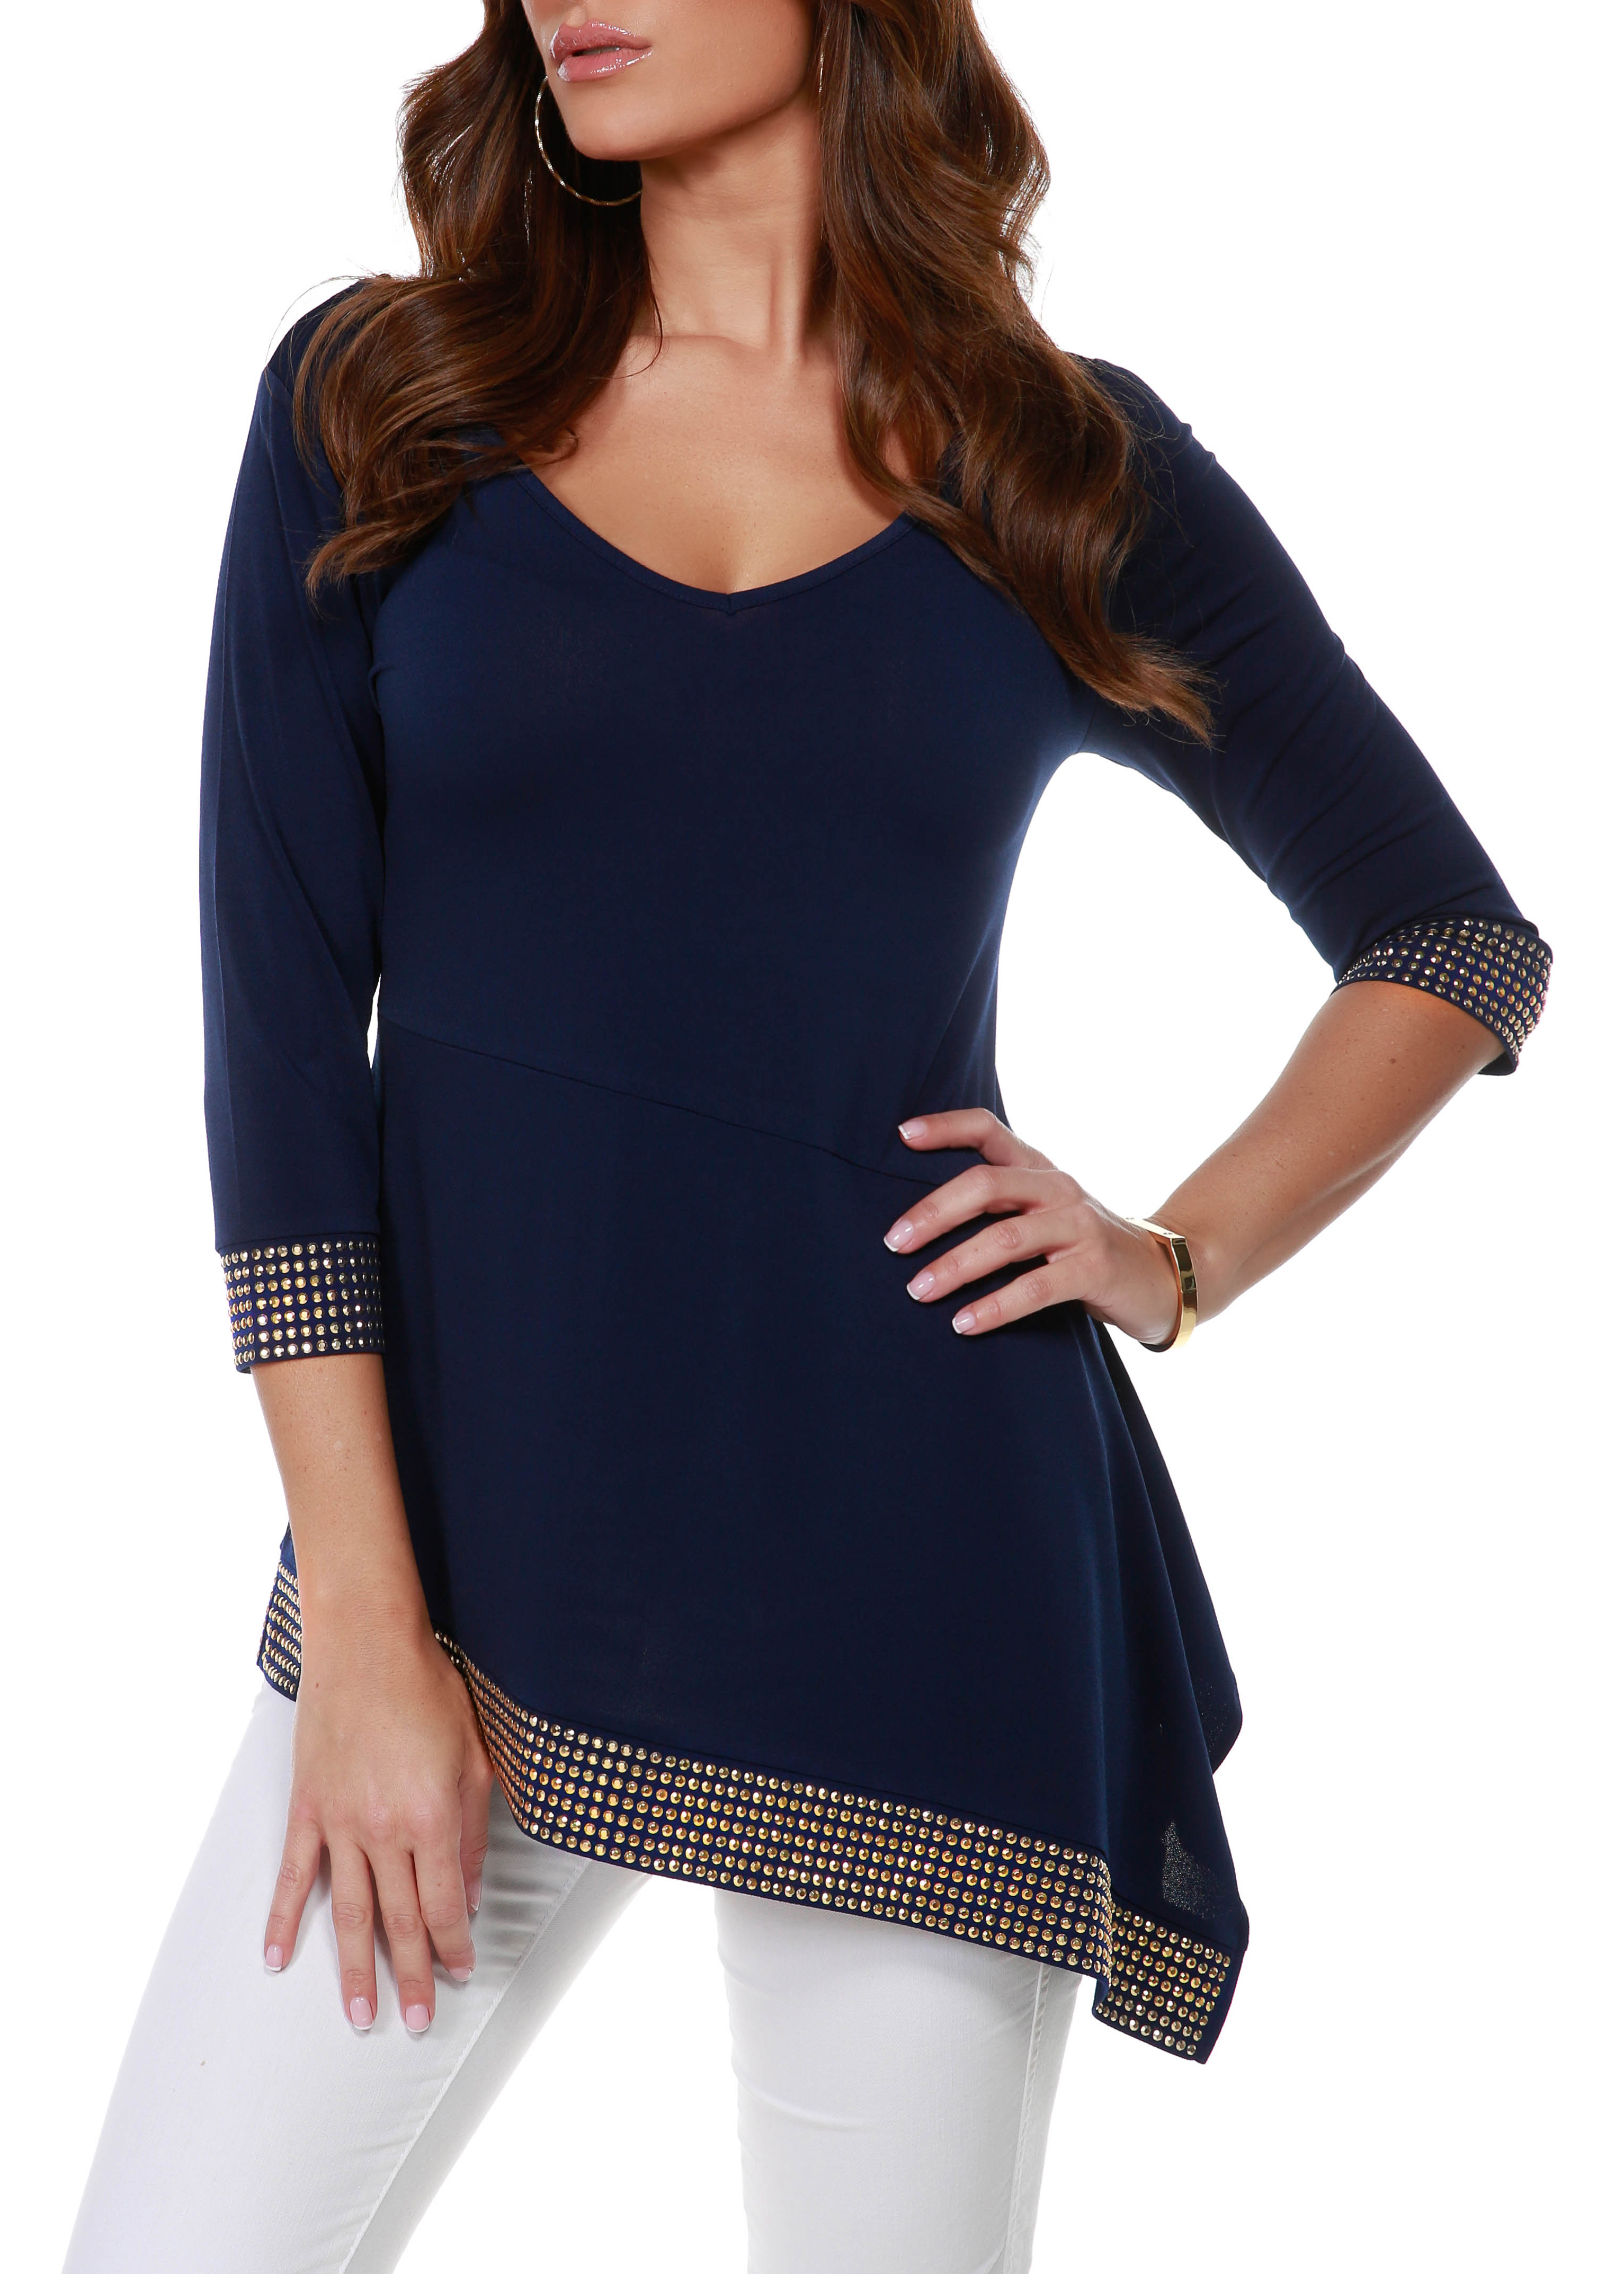 3/4 Sleeve Asymmetrical Hem With Studs -Navy/Gold - Front